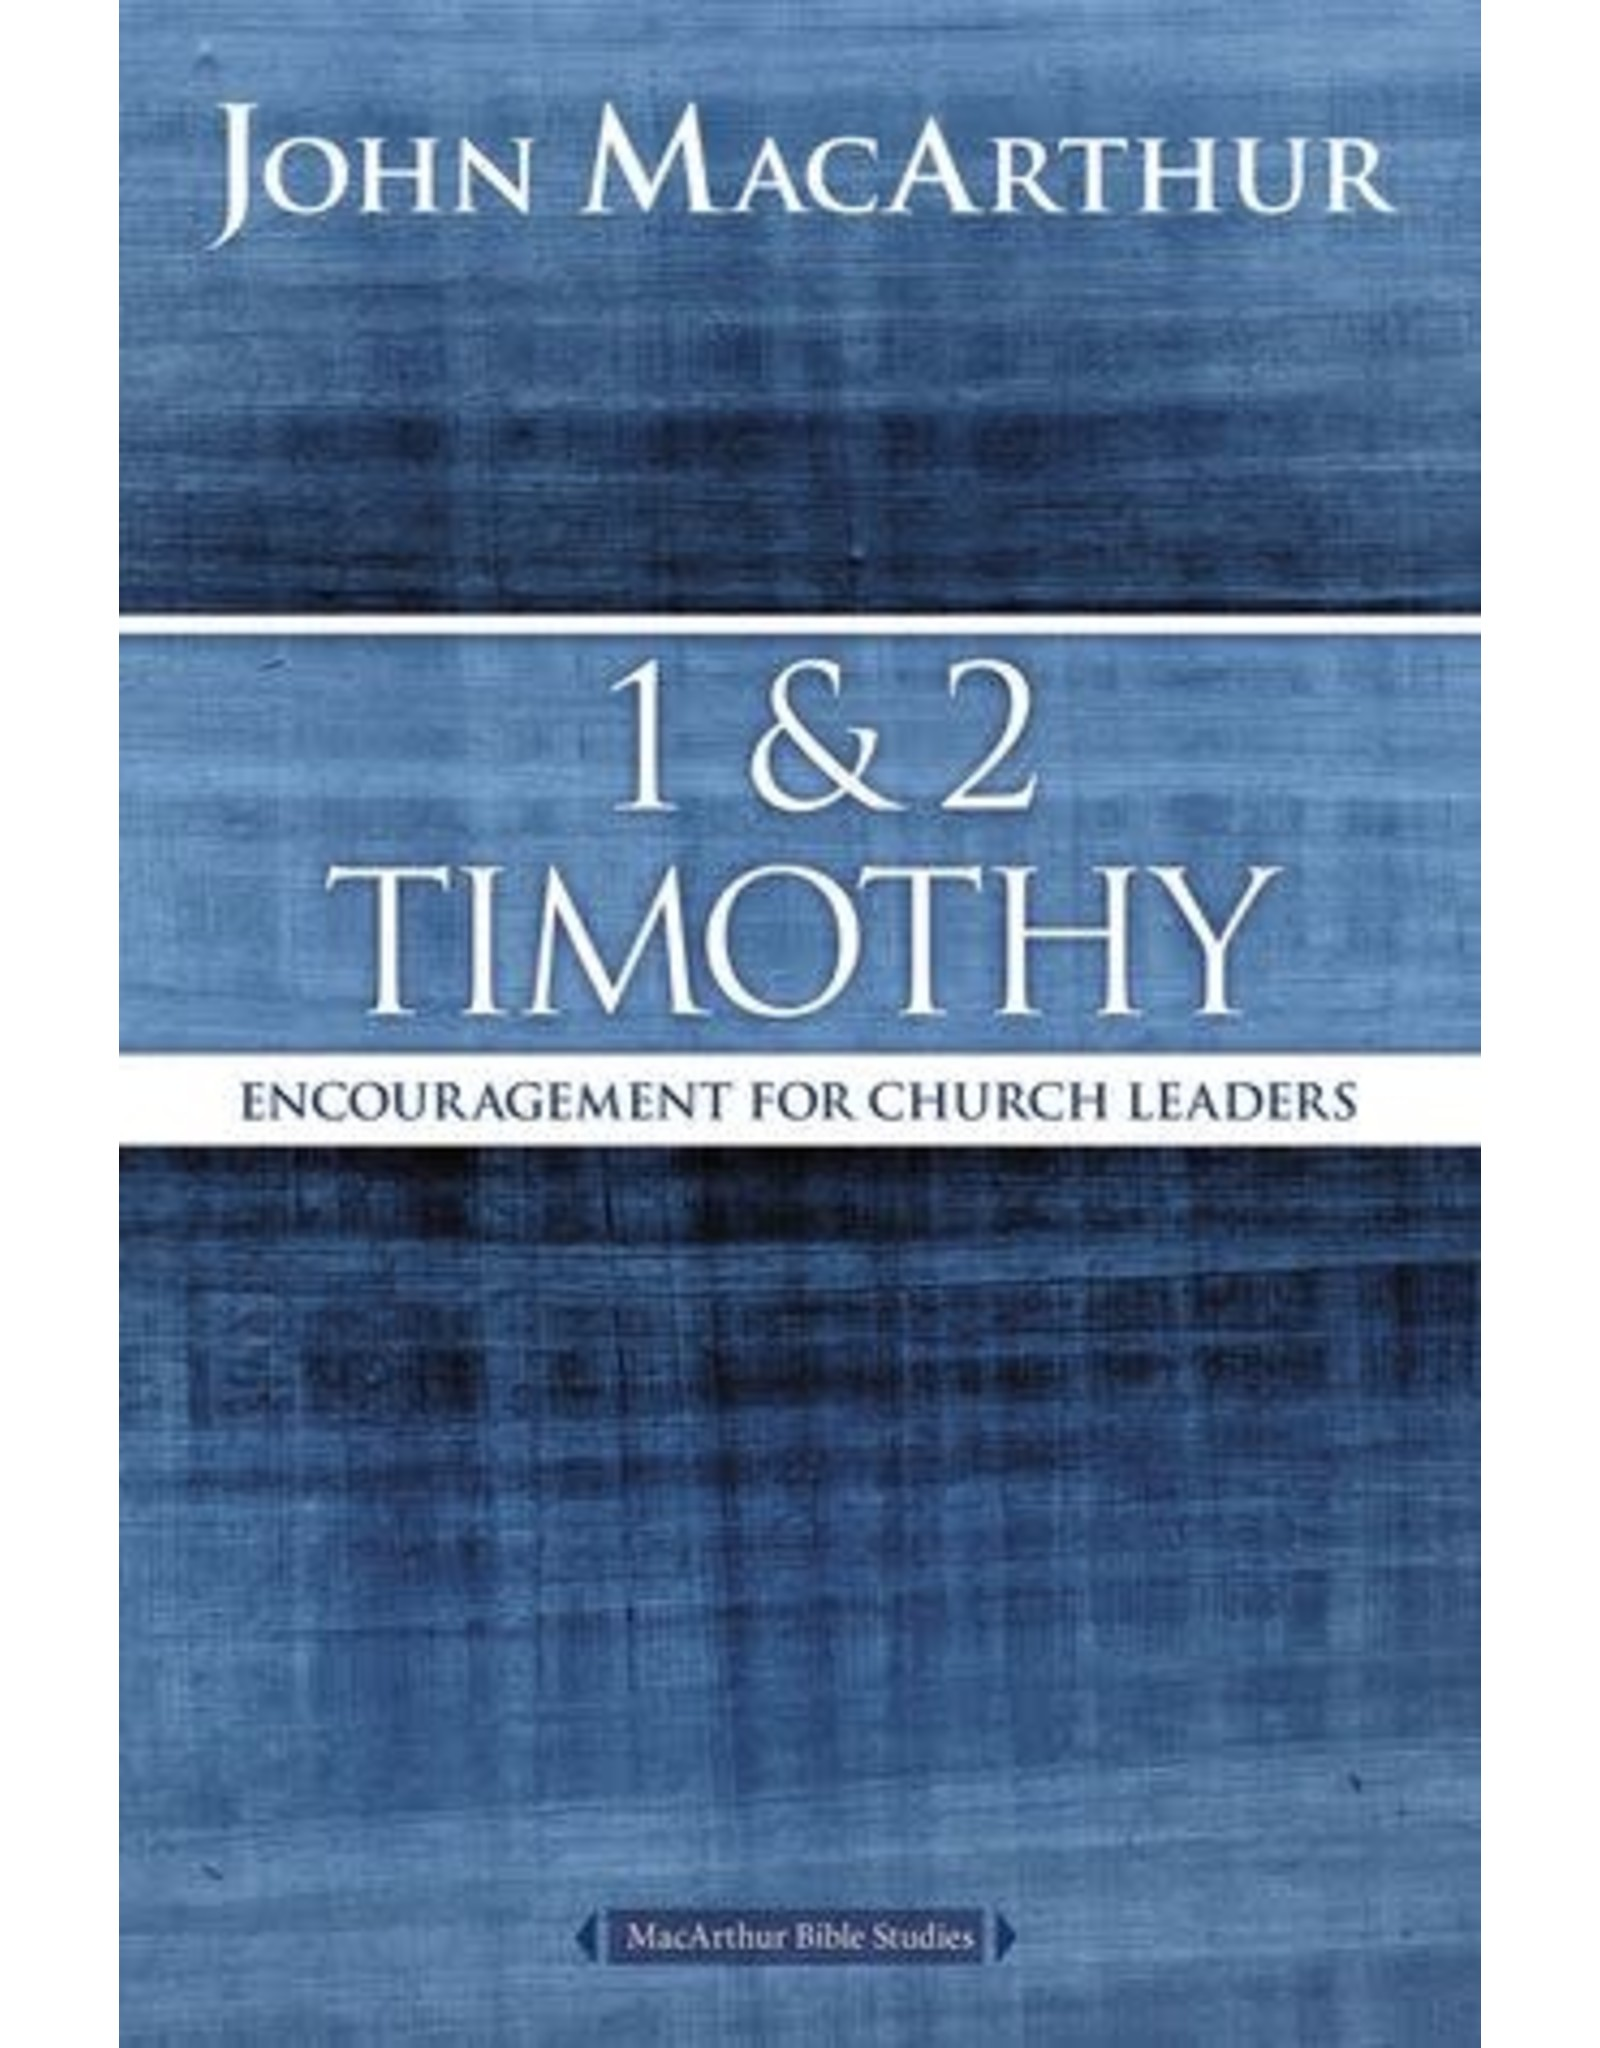 MacArthur 1 and 2 Timothy: Encouragement for Church Leaders